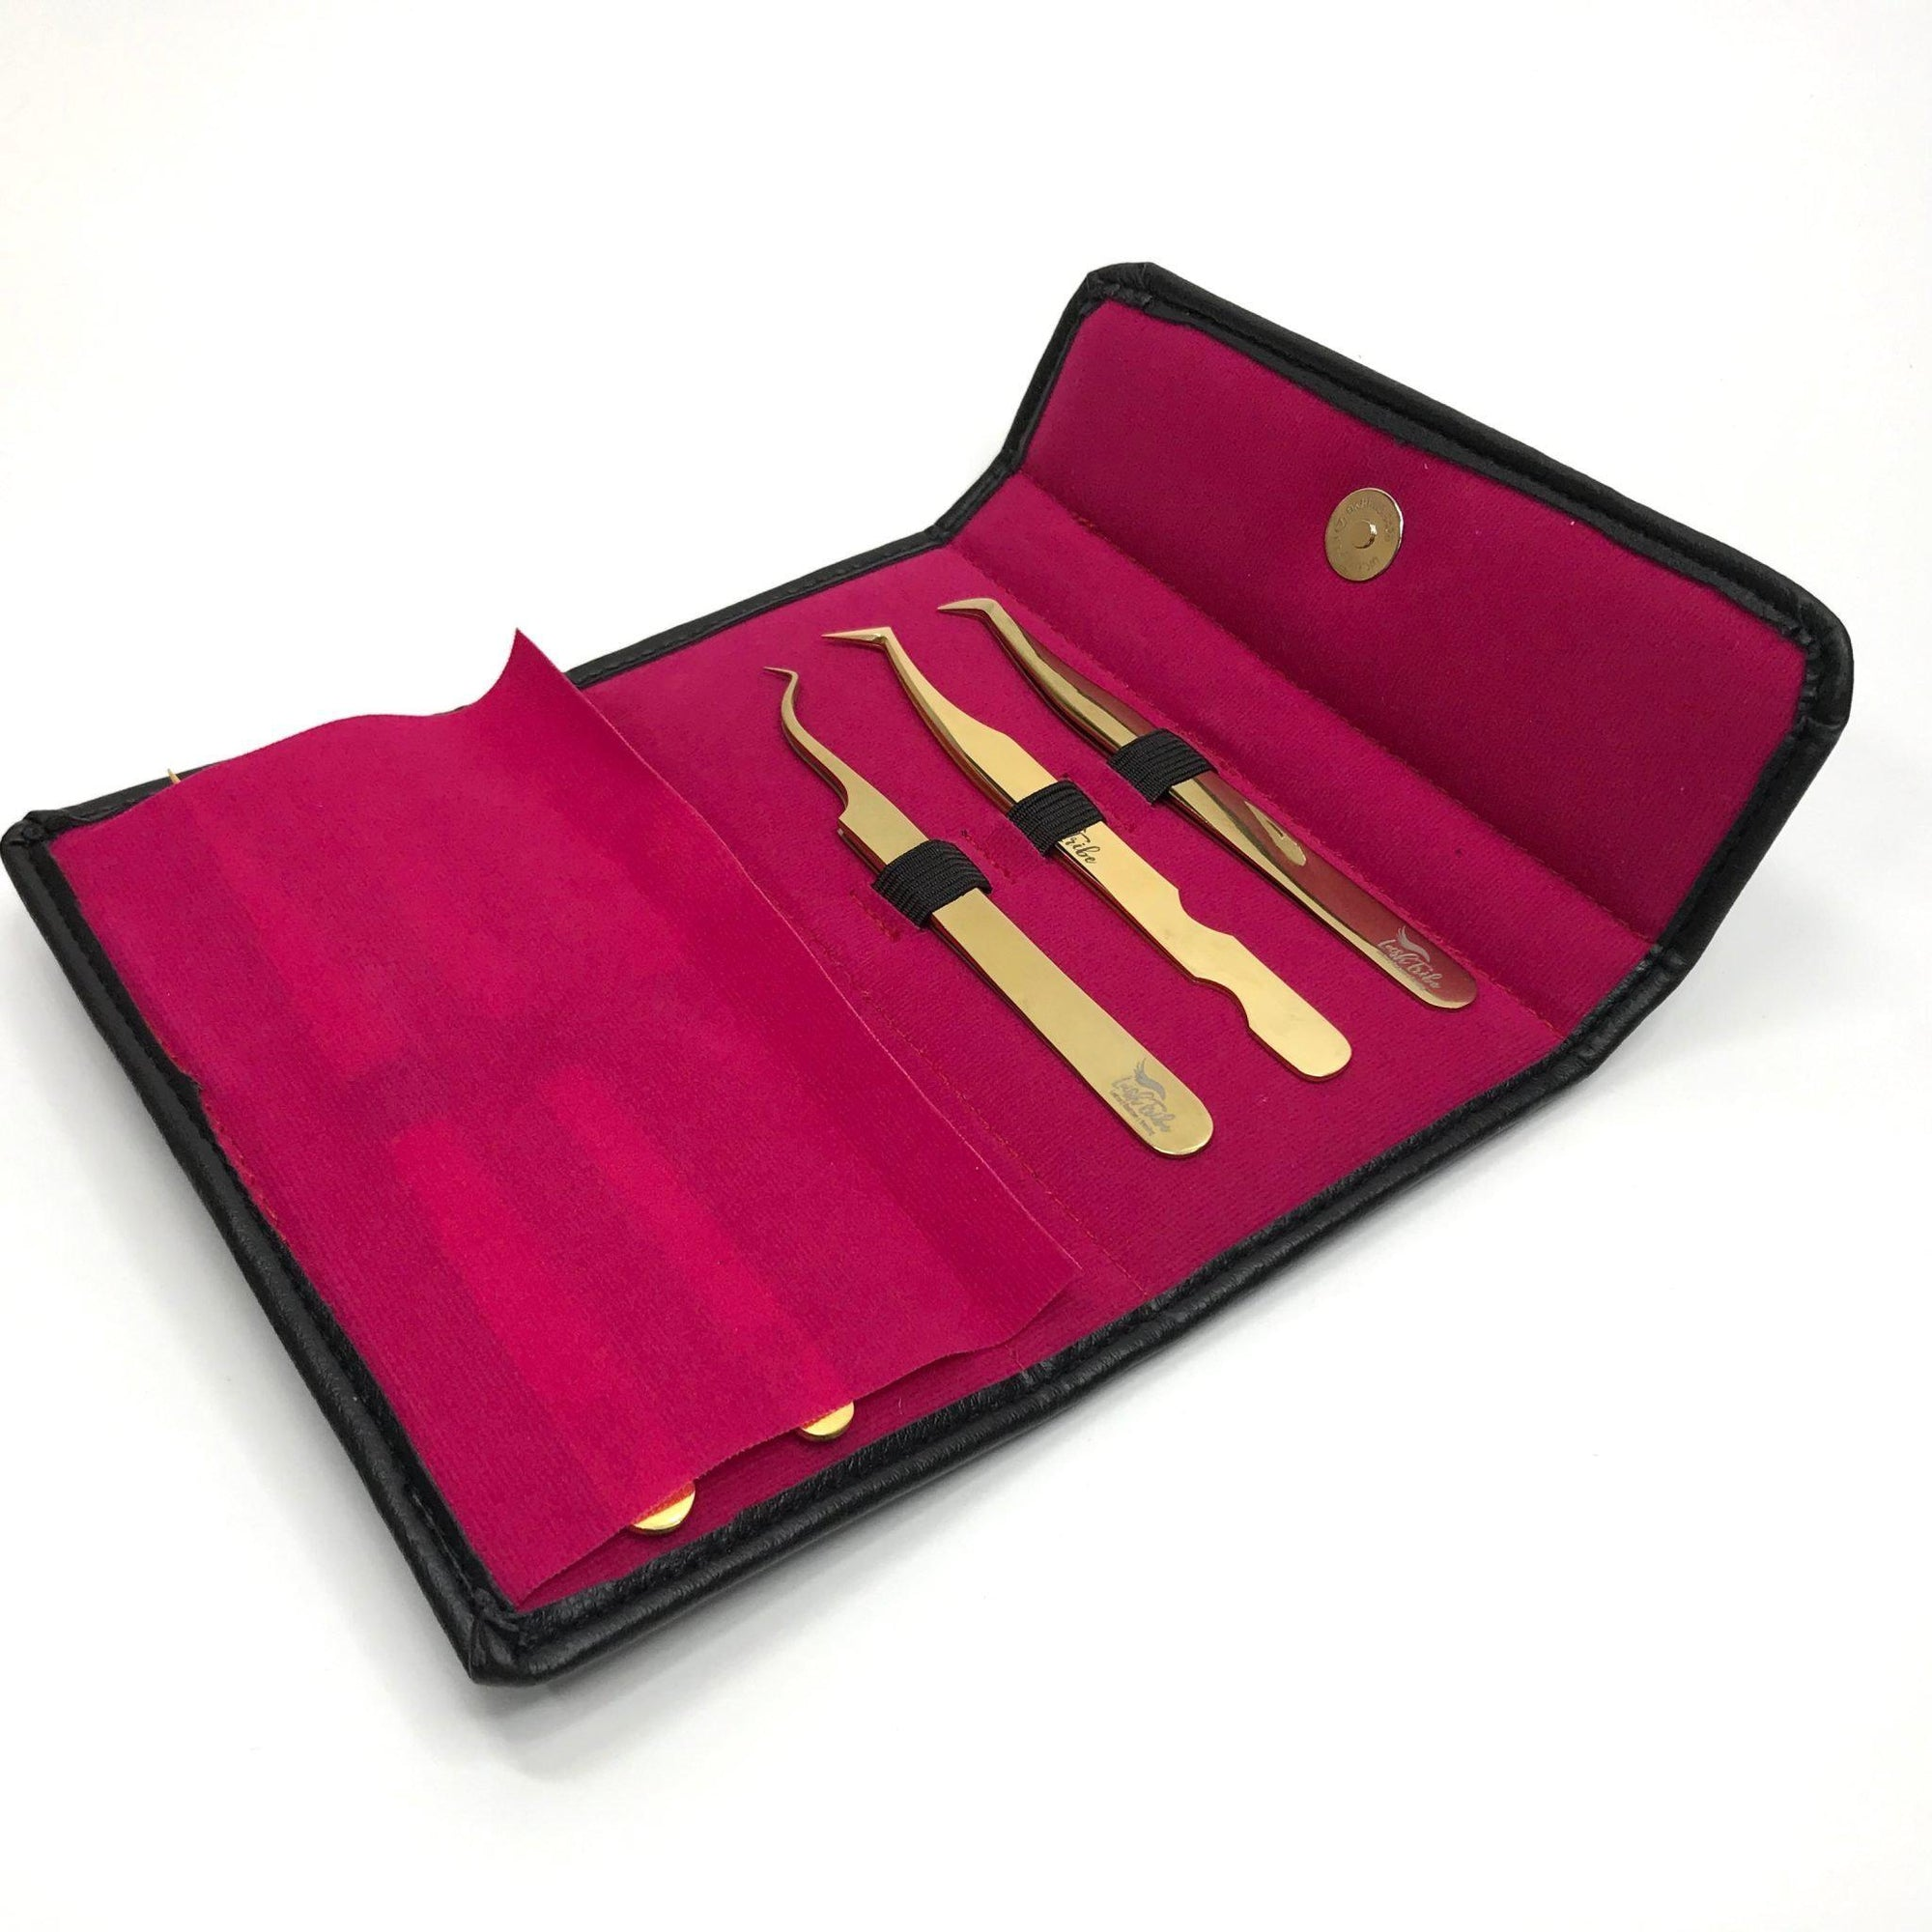 6 Slot Tweezer Case-6 Slot Tweezer Case-Lash Tribe